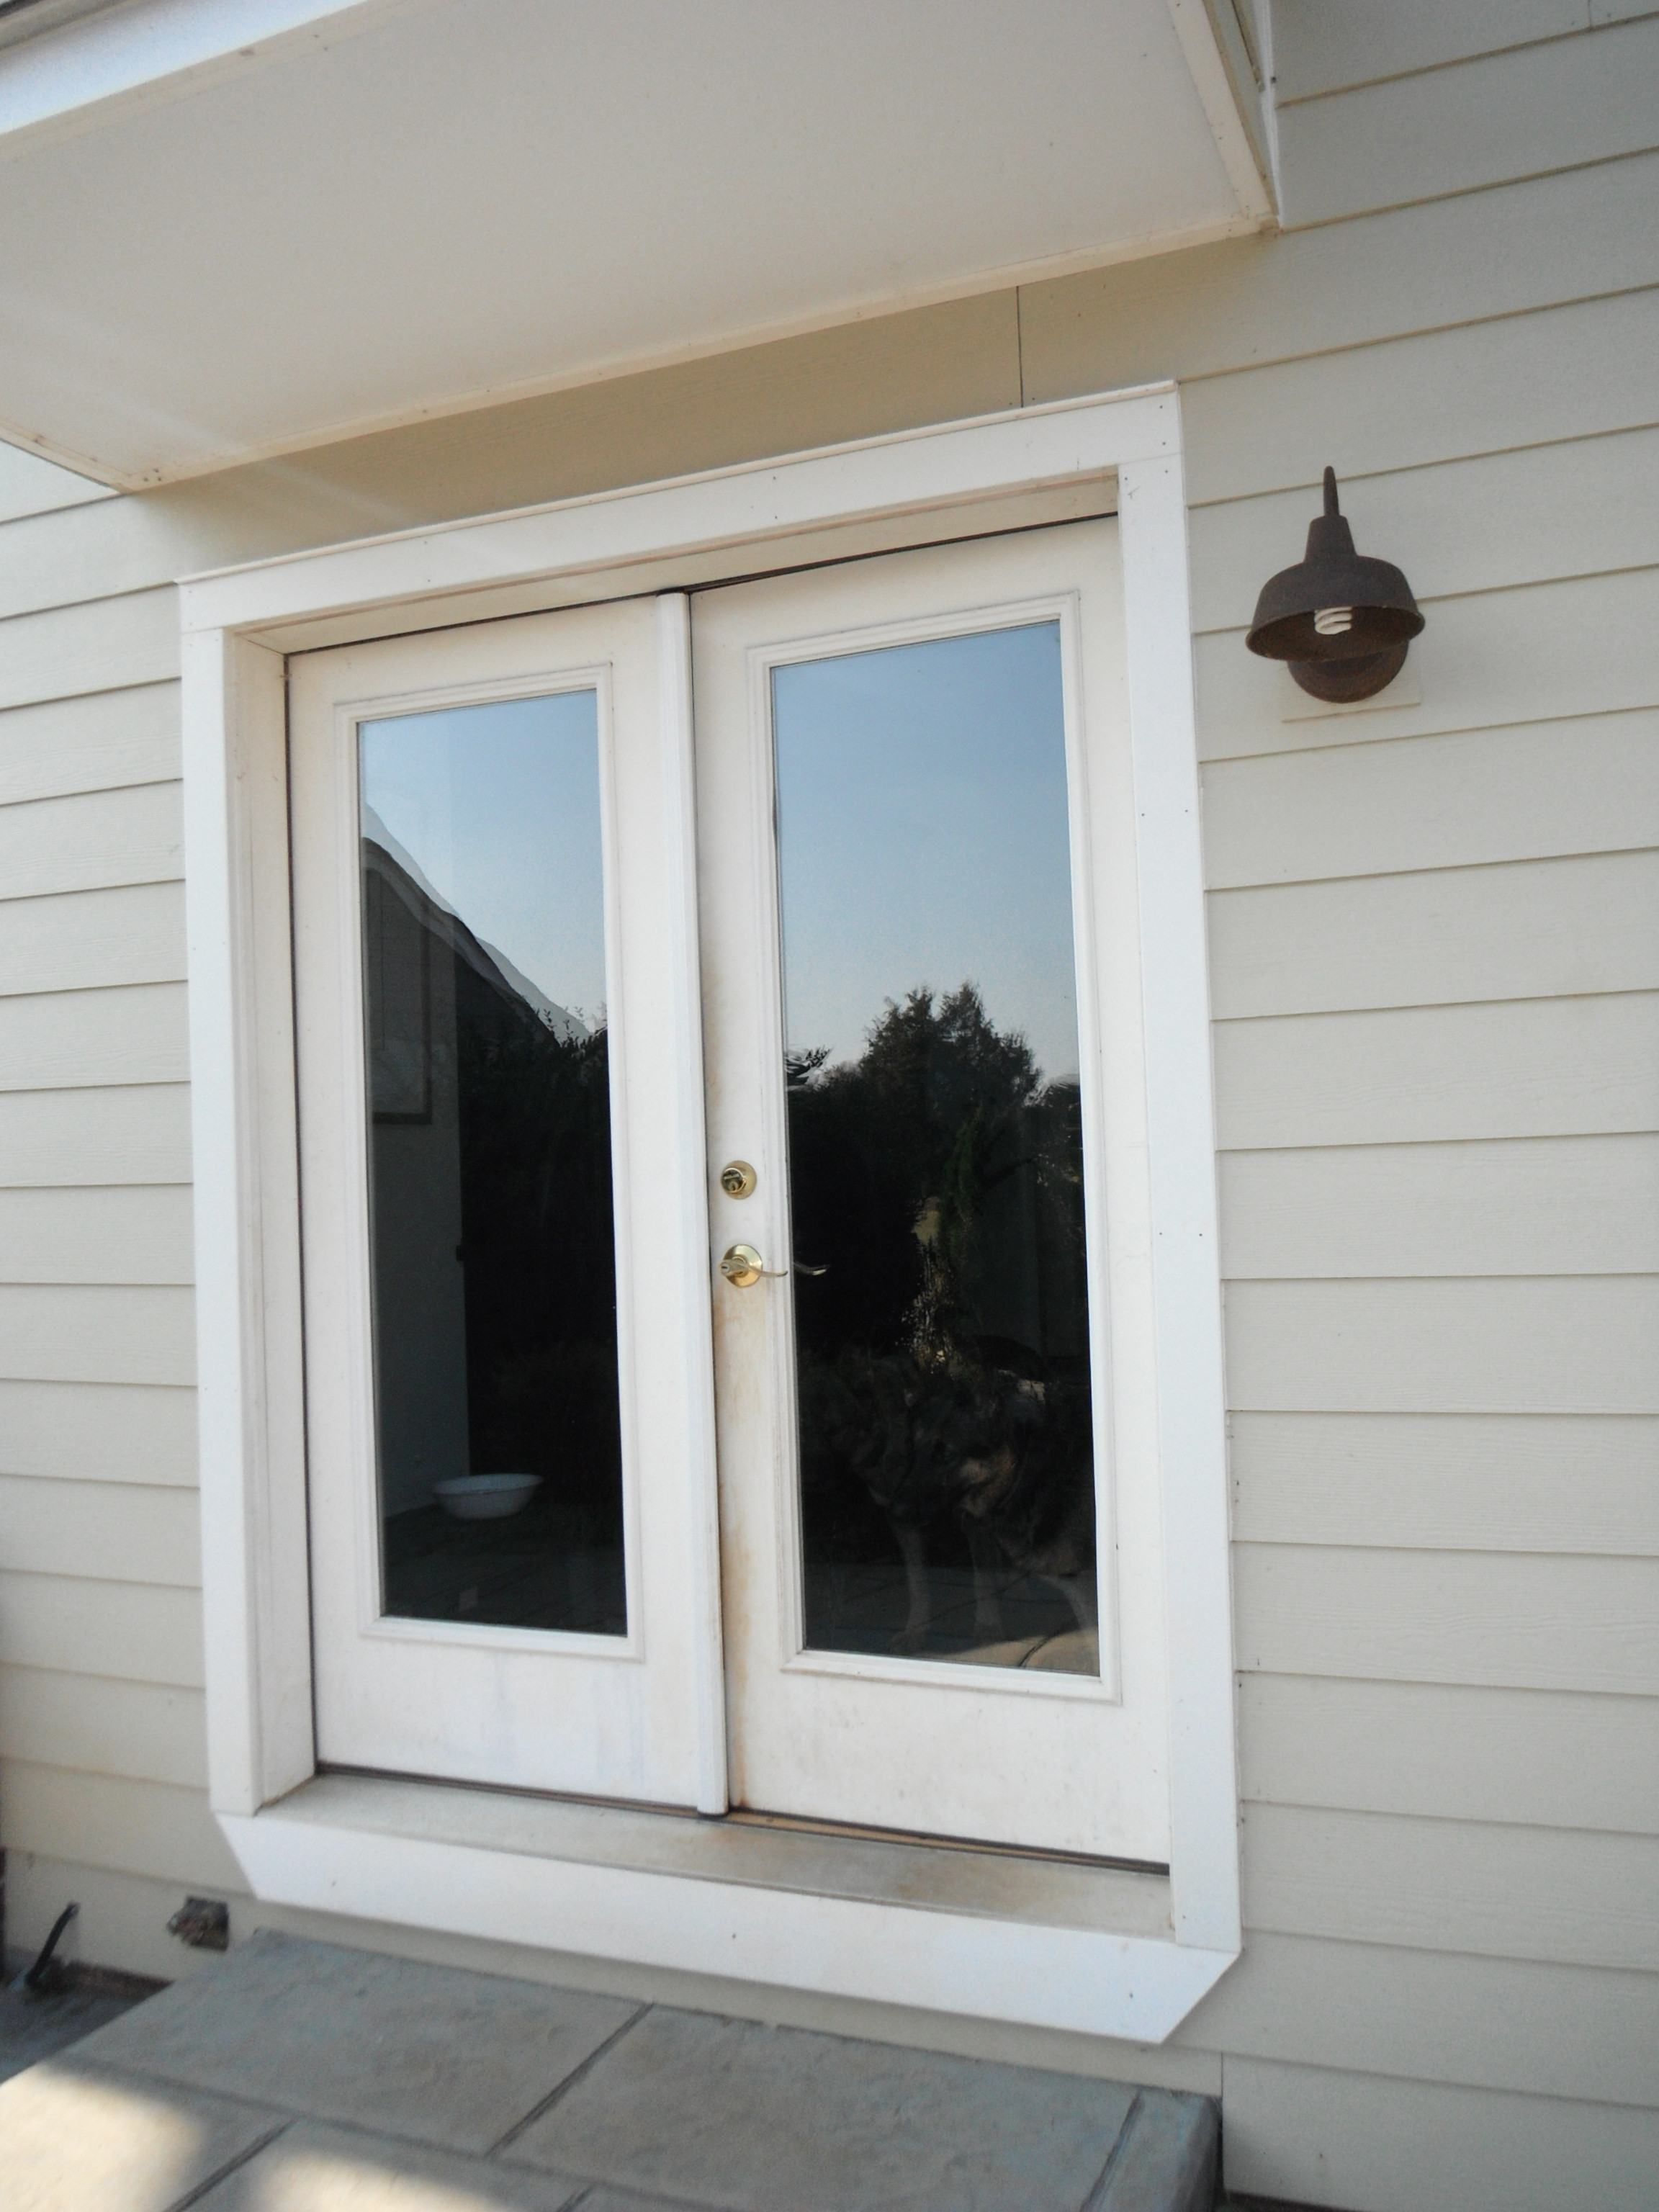 Best ideas about Therma Tru Patio Doors . Save or Pin Therma Tru Patio Doors – Darcylea Design Now.